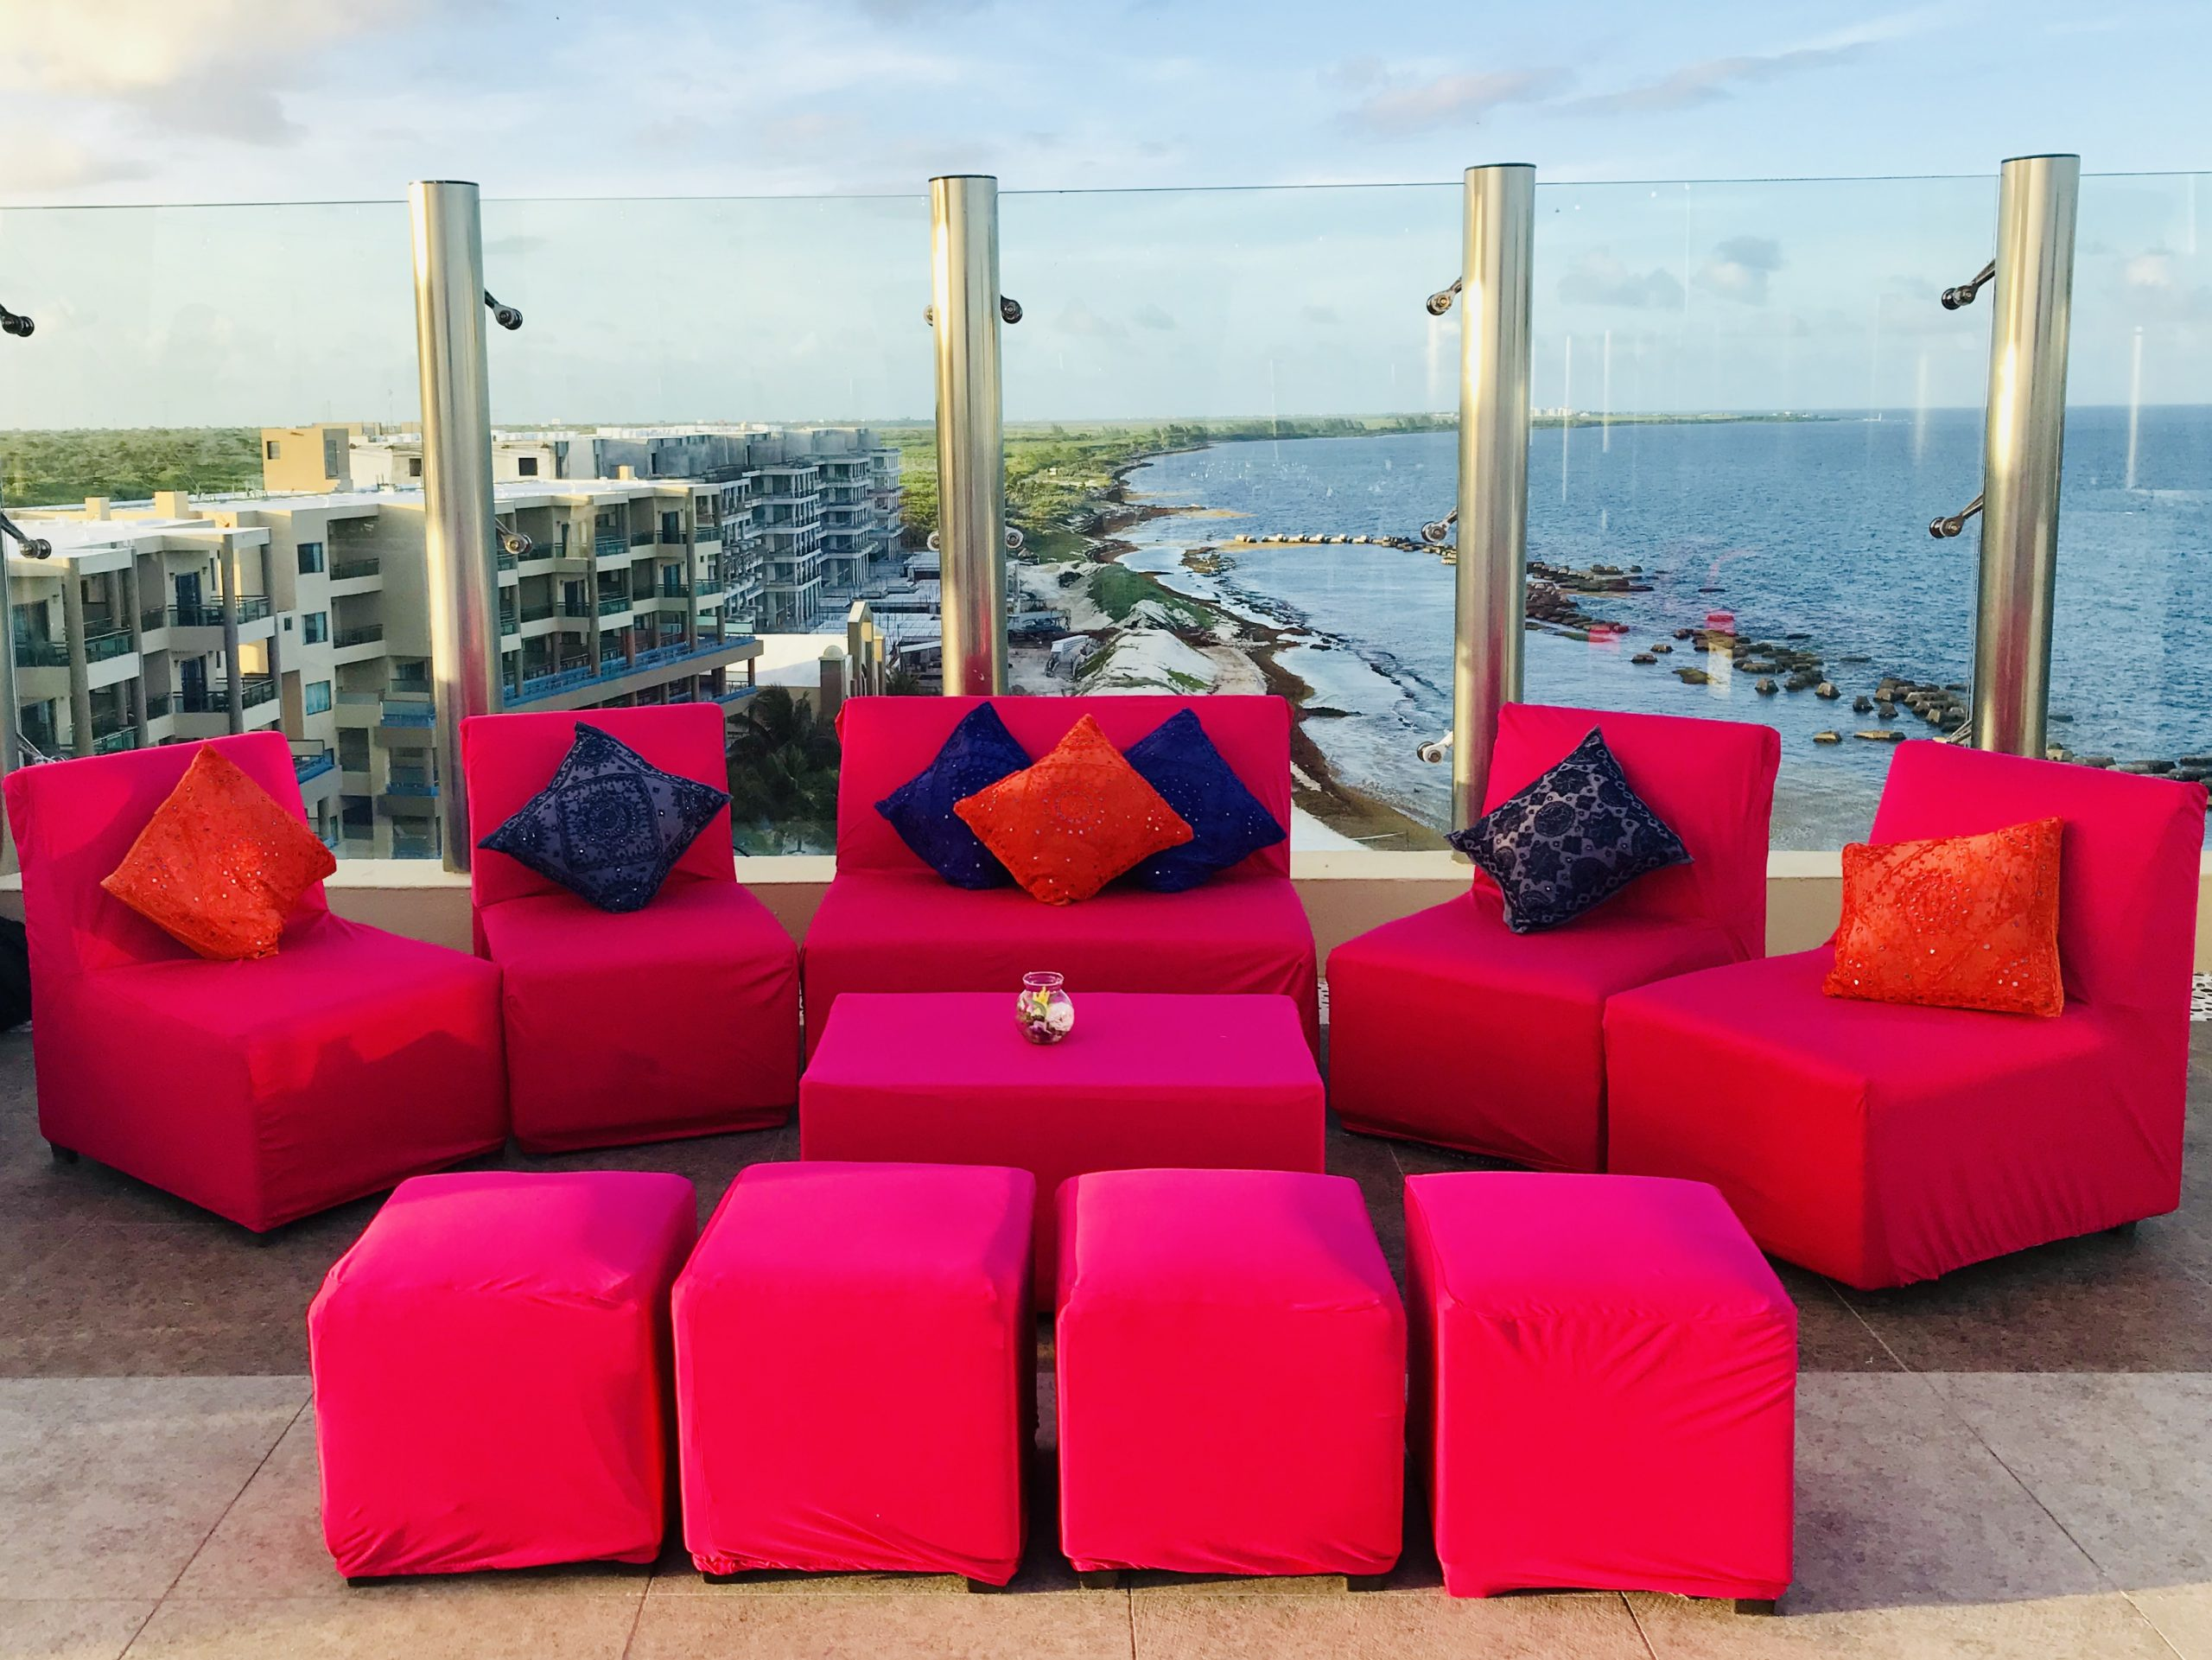 SKY DECK location cost for destination indian weddings at Generations riviera maya mexico